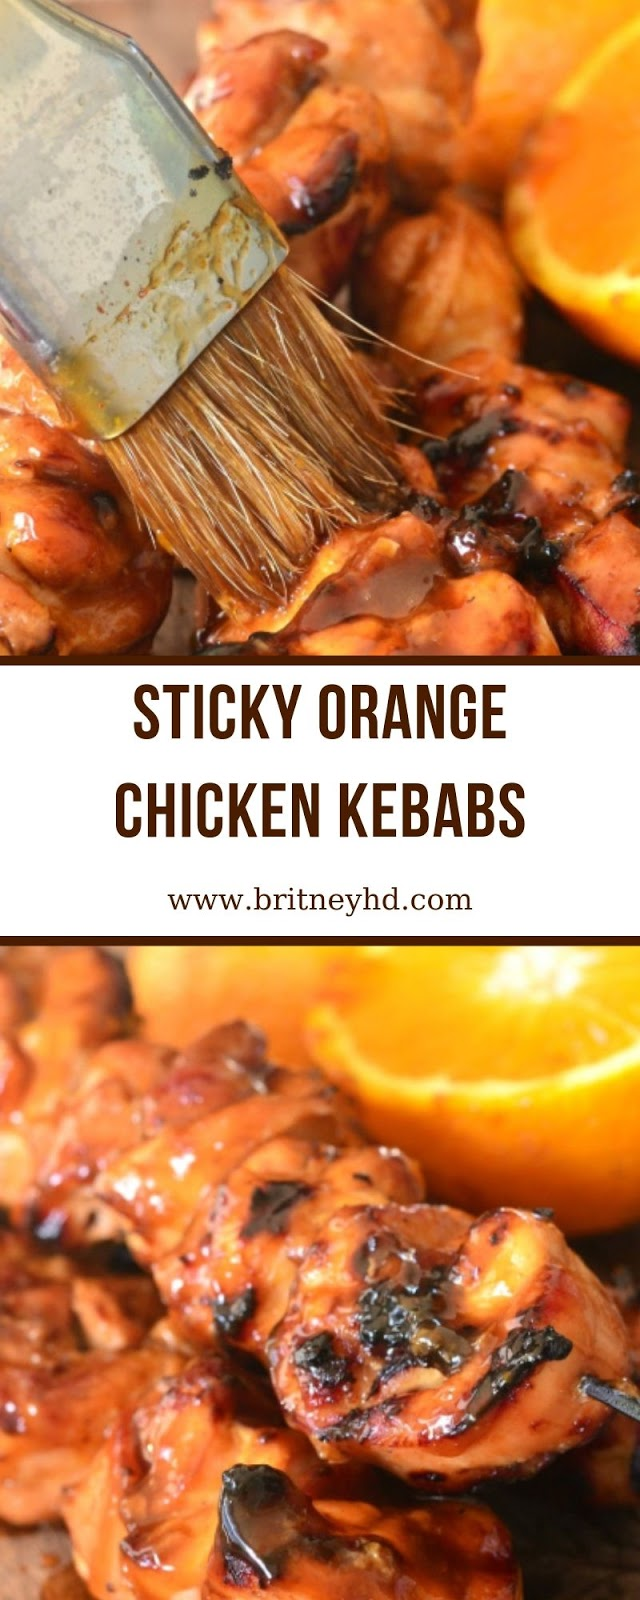 STICKY ORANGE CHICKEN KEBABS